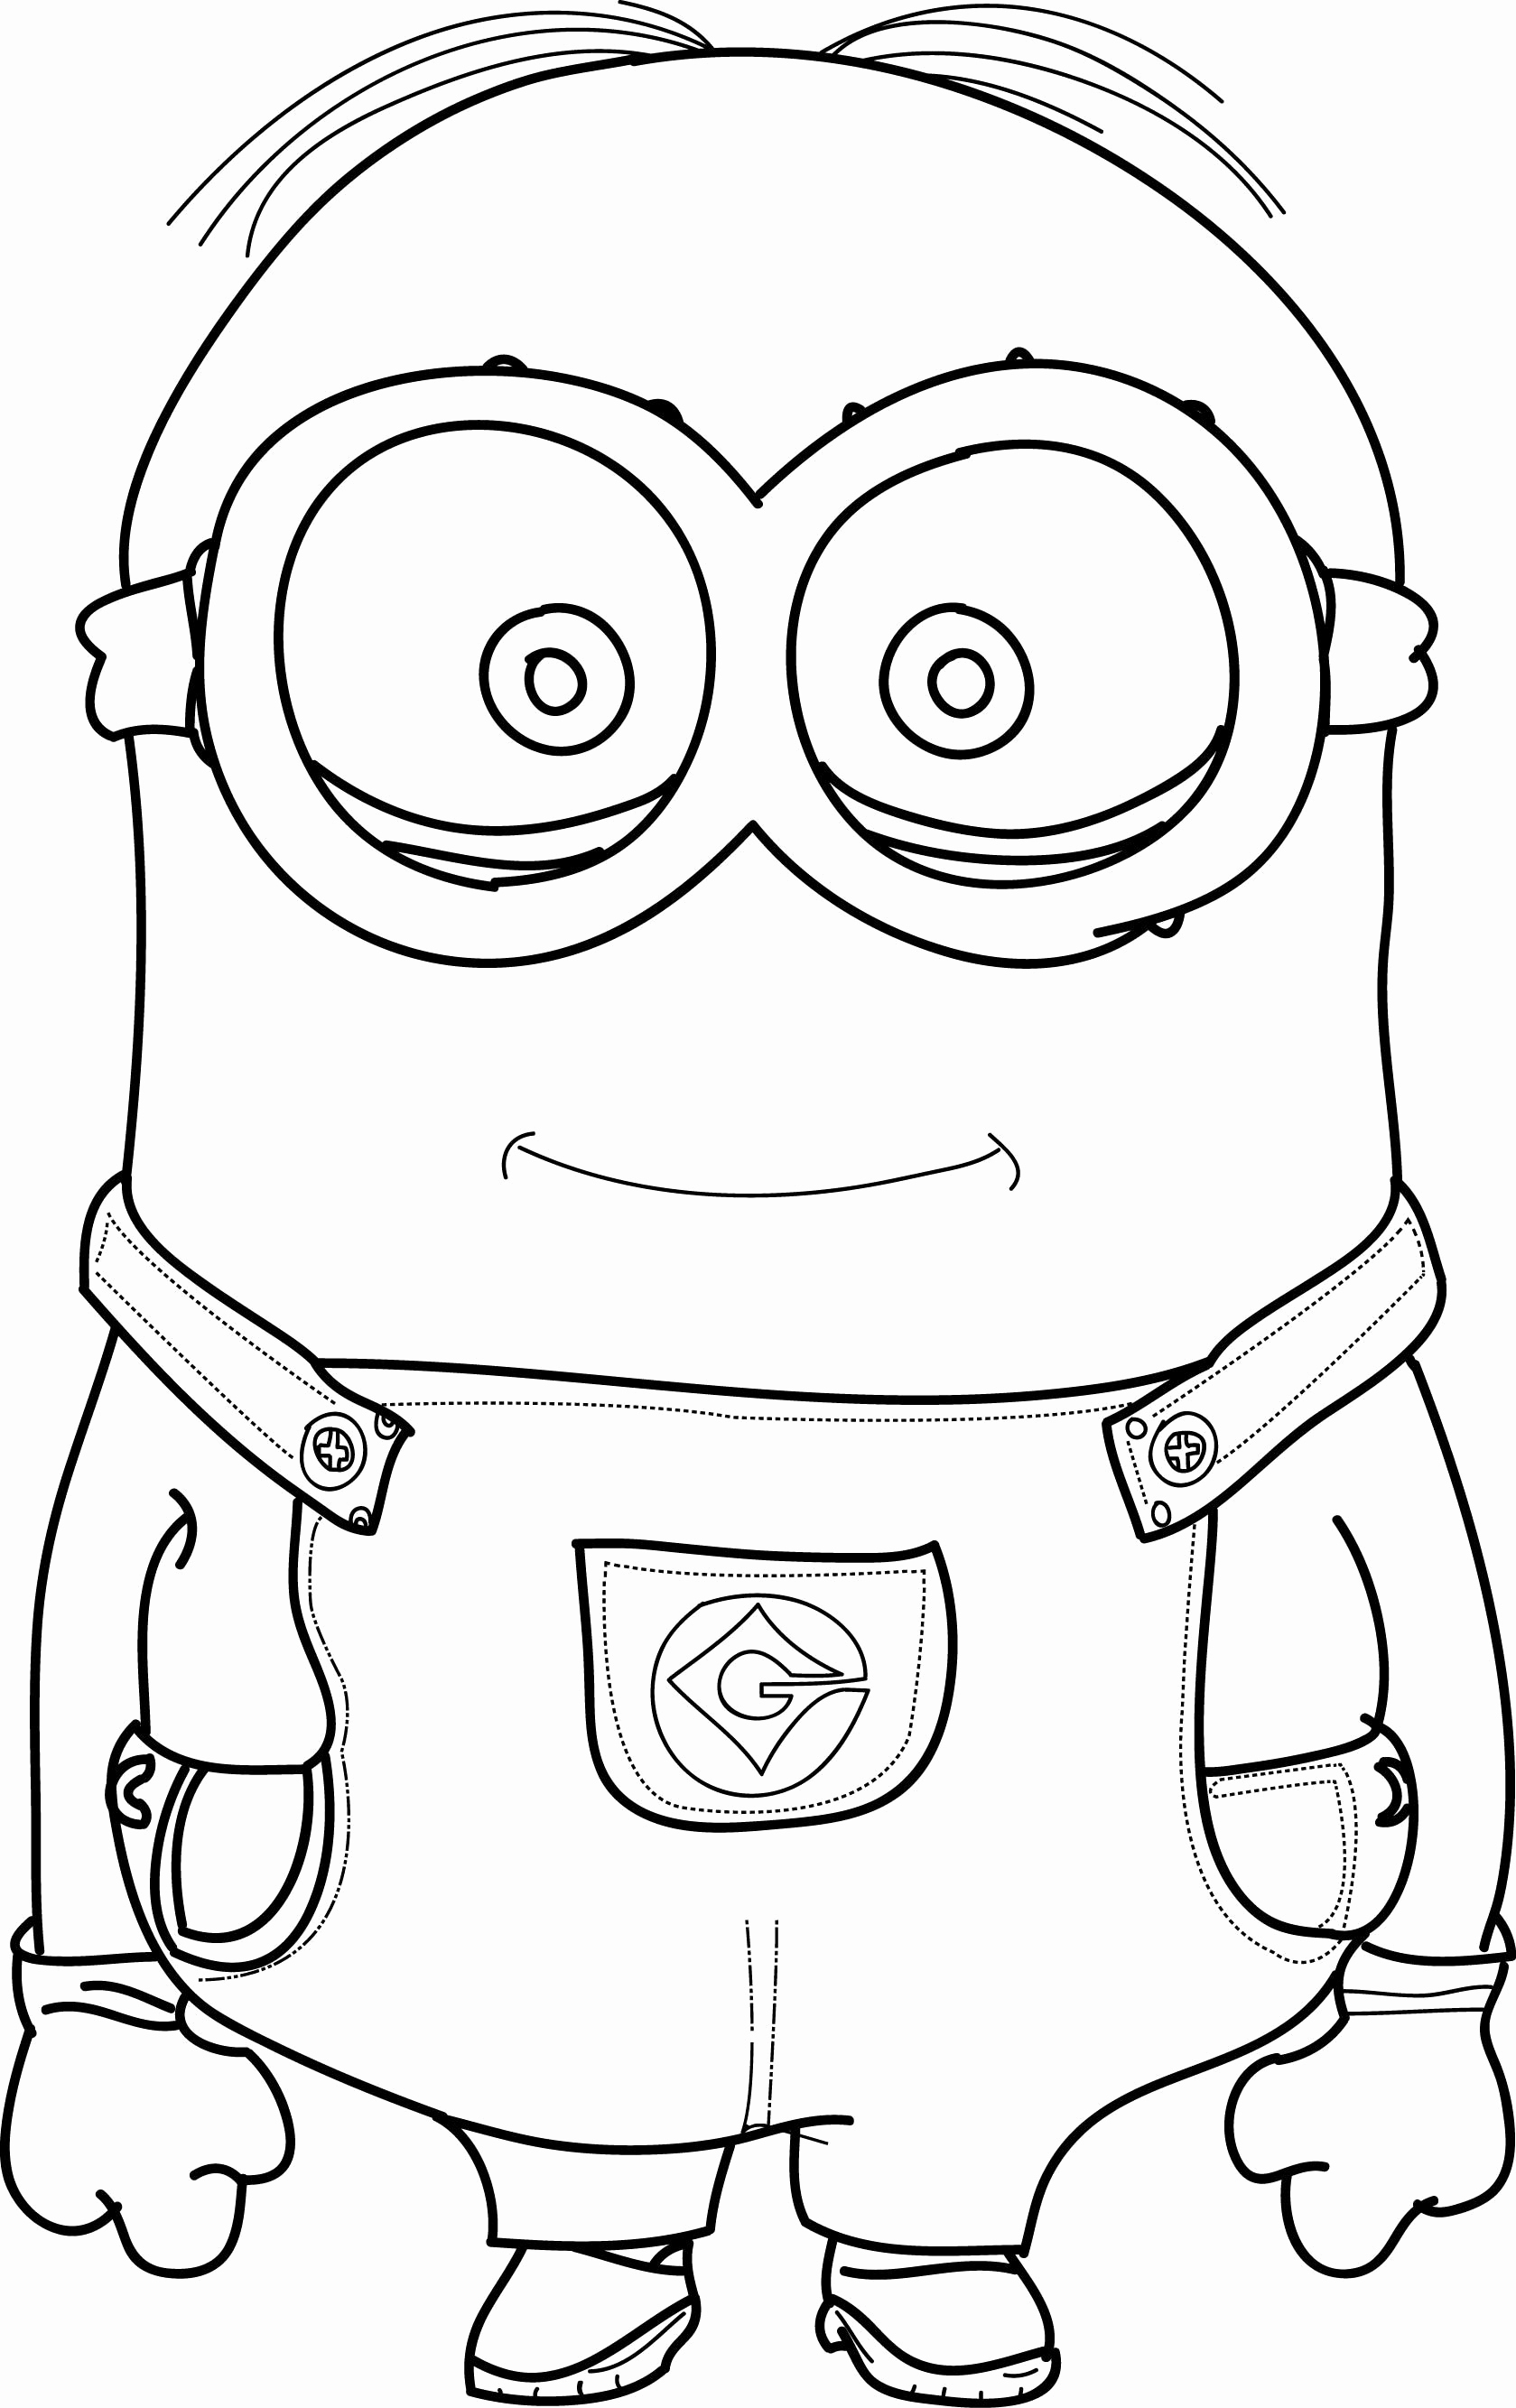 Halloween Minion Coloring Pages At Getcolorings